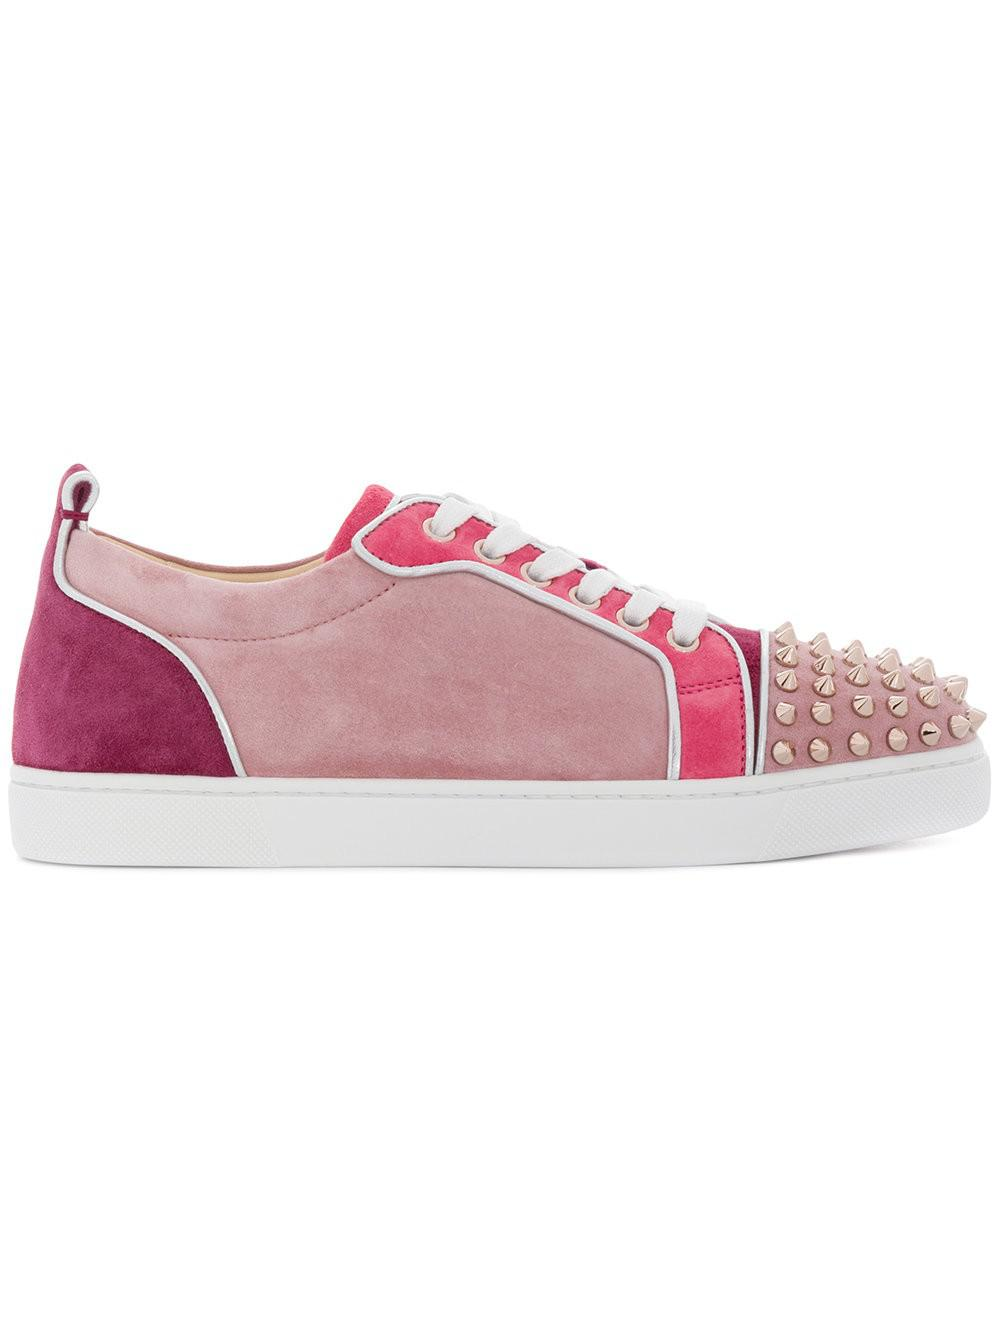 e258ee9dca65 Lyst - Christian Louboutin Junior Spike Z Sneakers in Pink